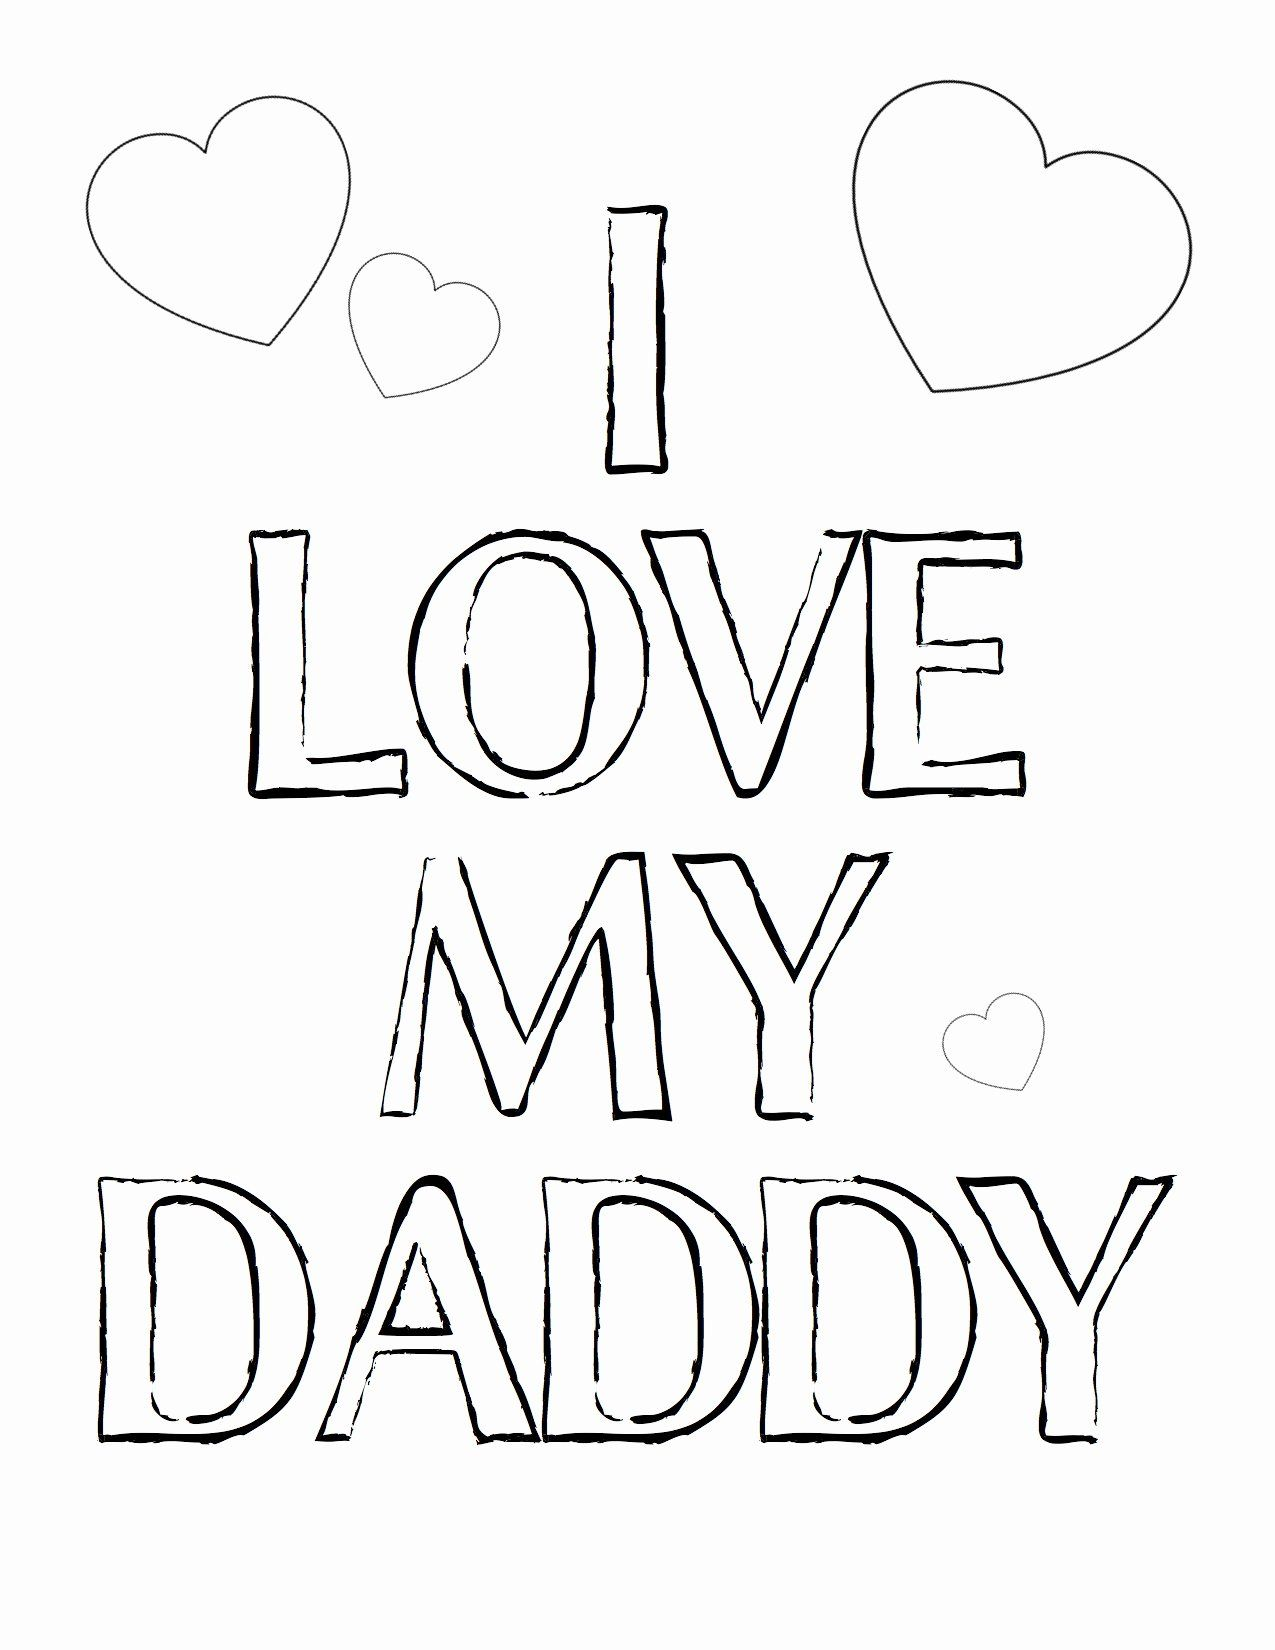 I Love Dad Coloring Pages in 2020 | Fathers day coloring ...